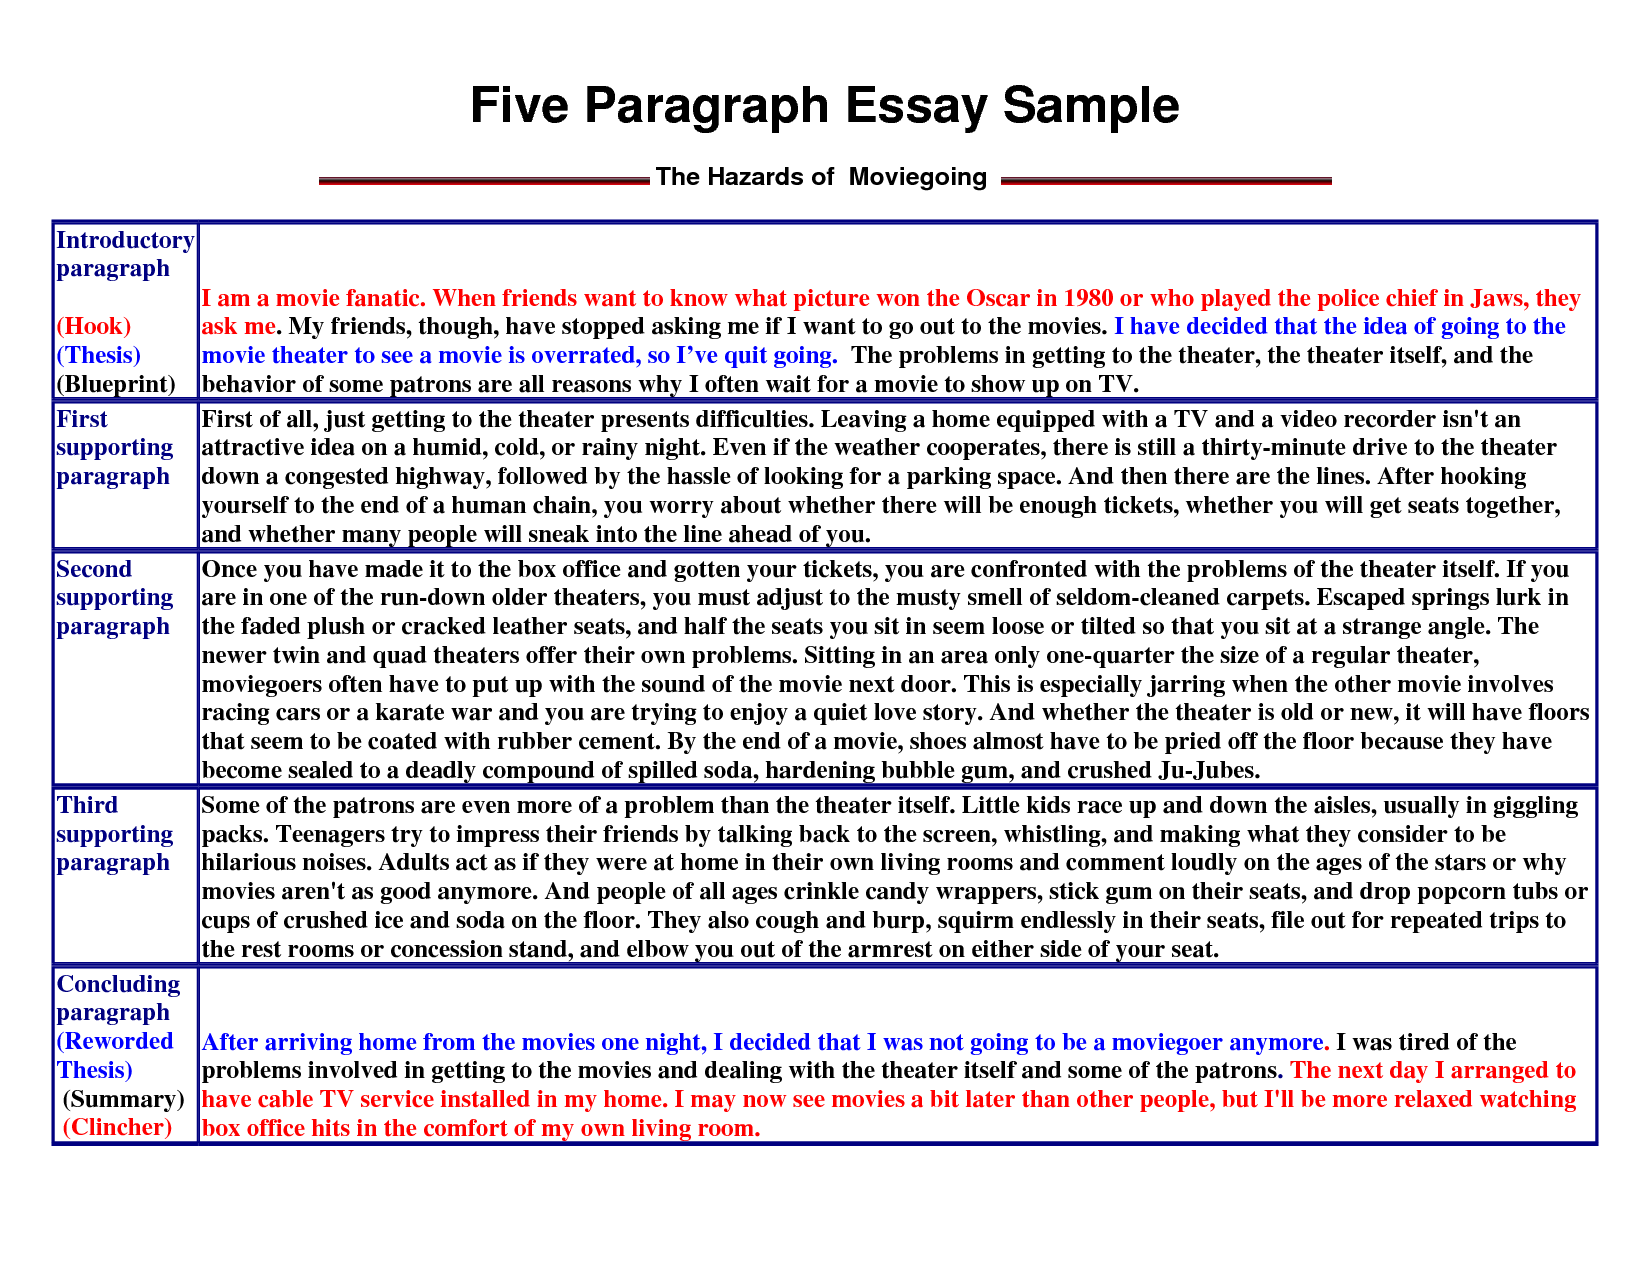 Middle school five paragraph essay examples